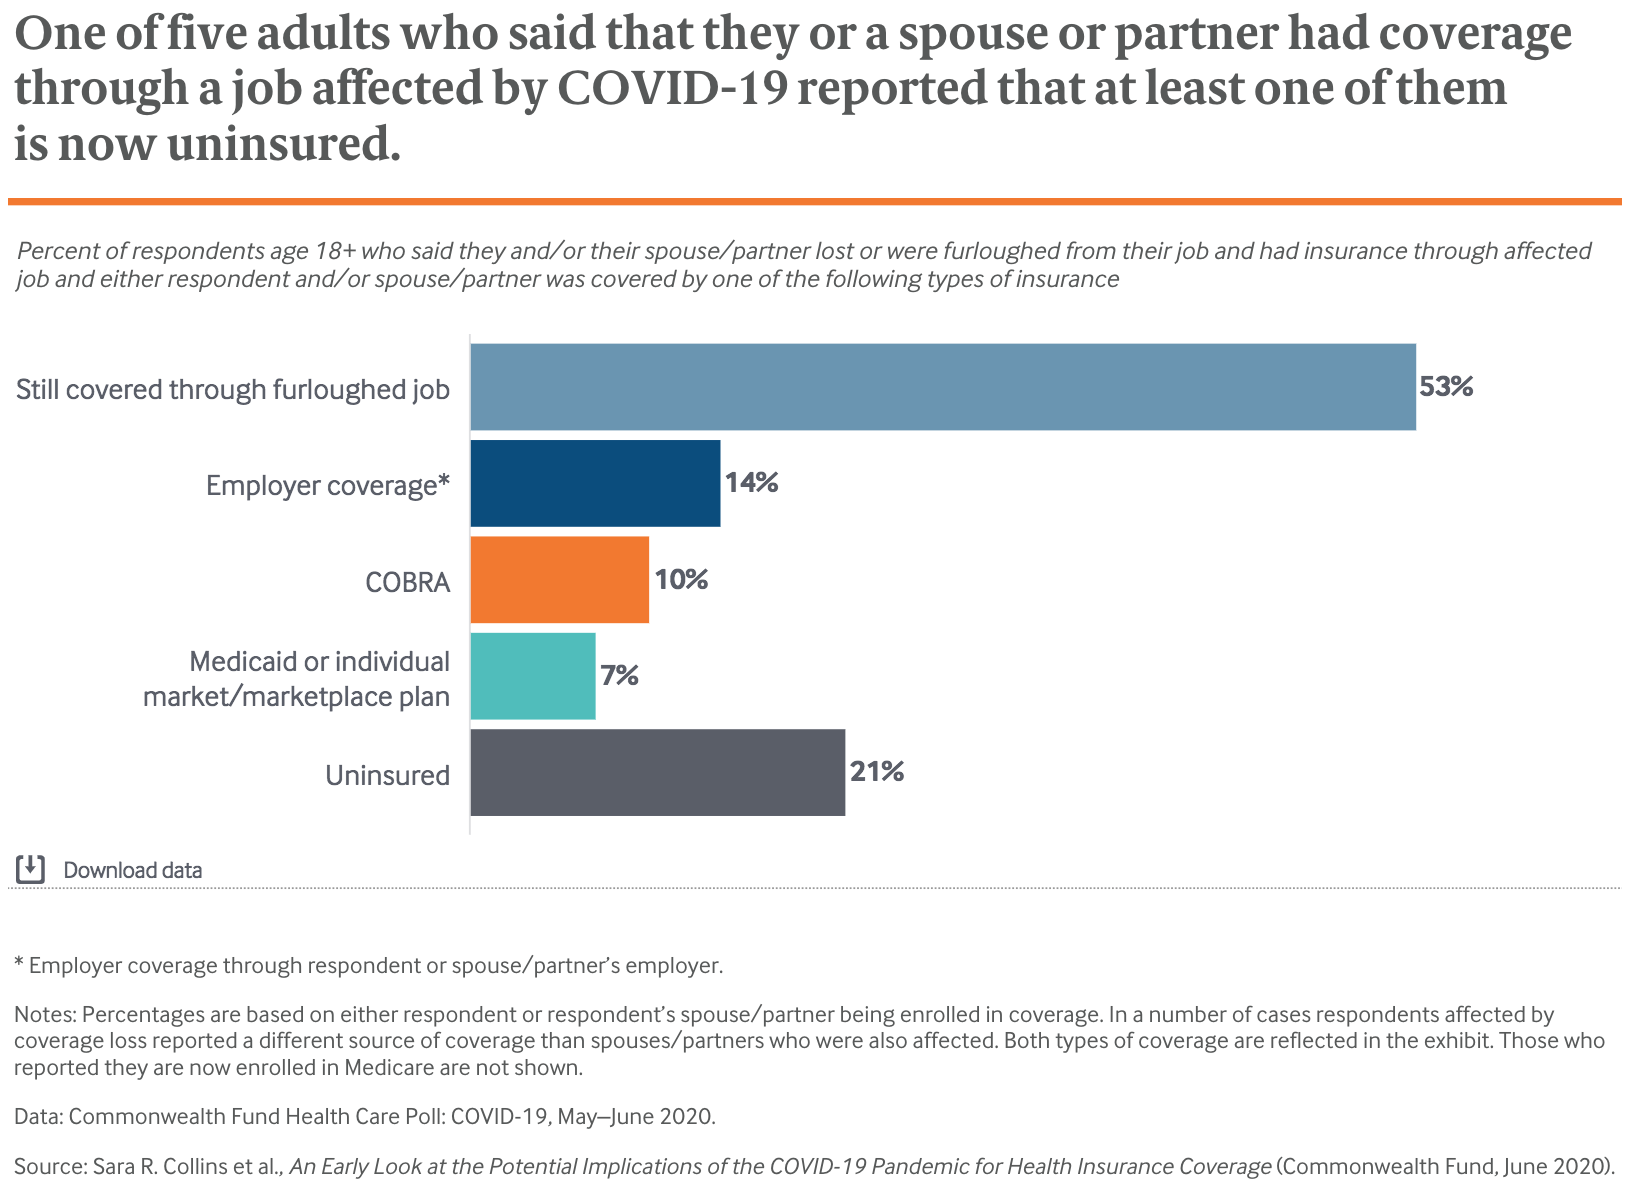 One of five adults who said that they or a spouse or partner had coverage through a job affected by COVID-19 reported that at least one of them  is now uninsured.